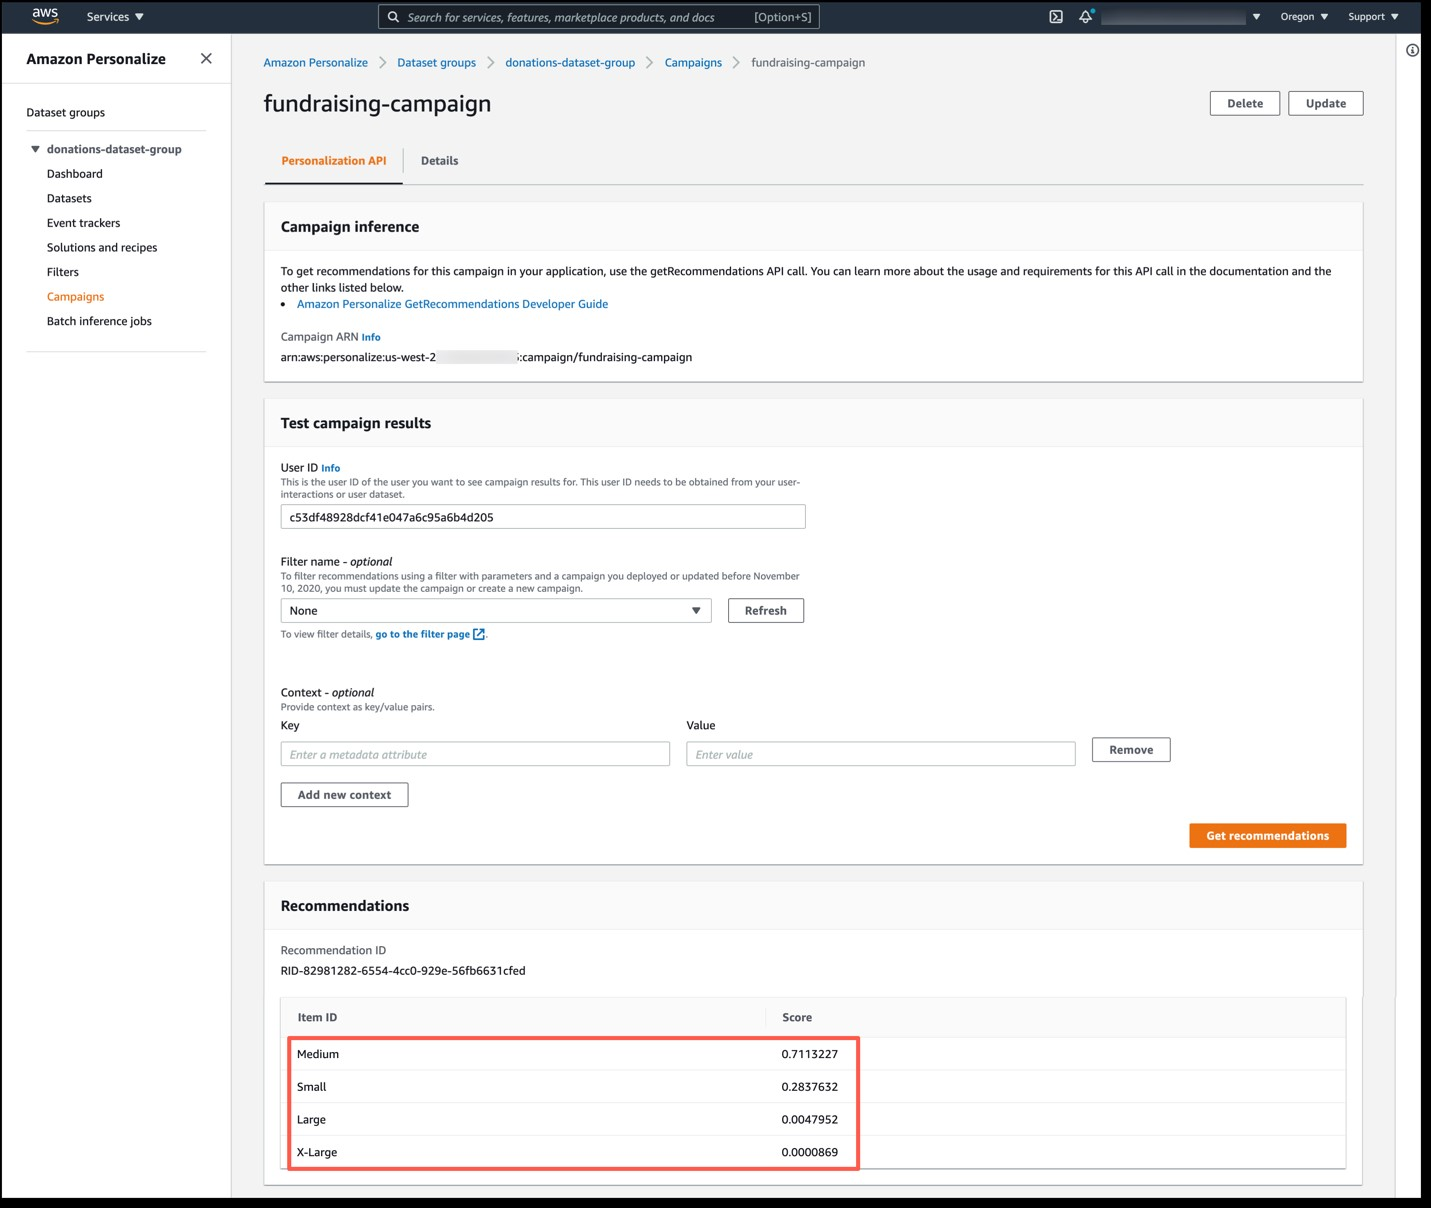 Figure 4: The Campaigns tab of the Amazon Personalize console, providing donation recommendations for a user